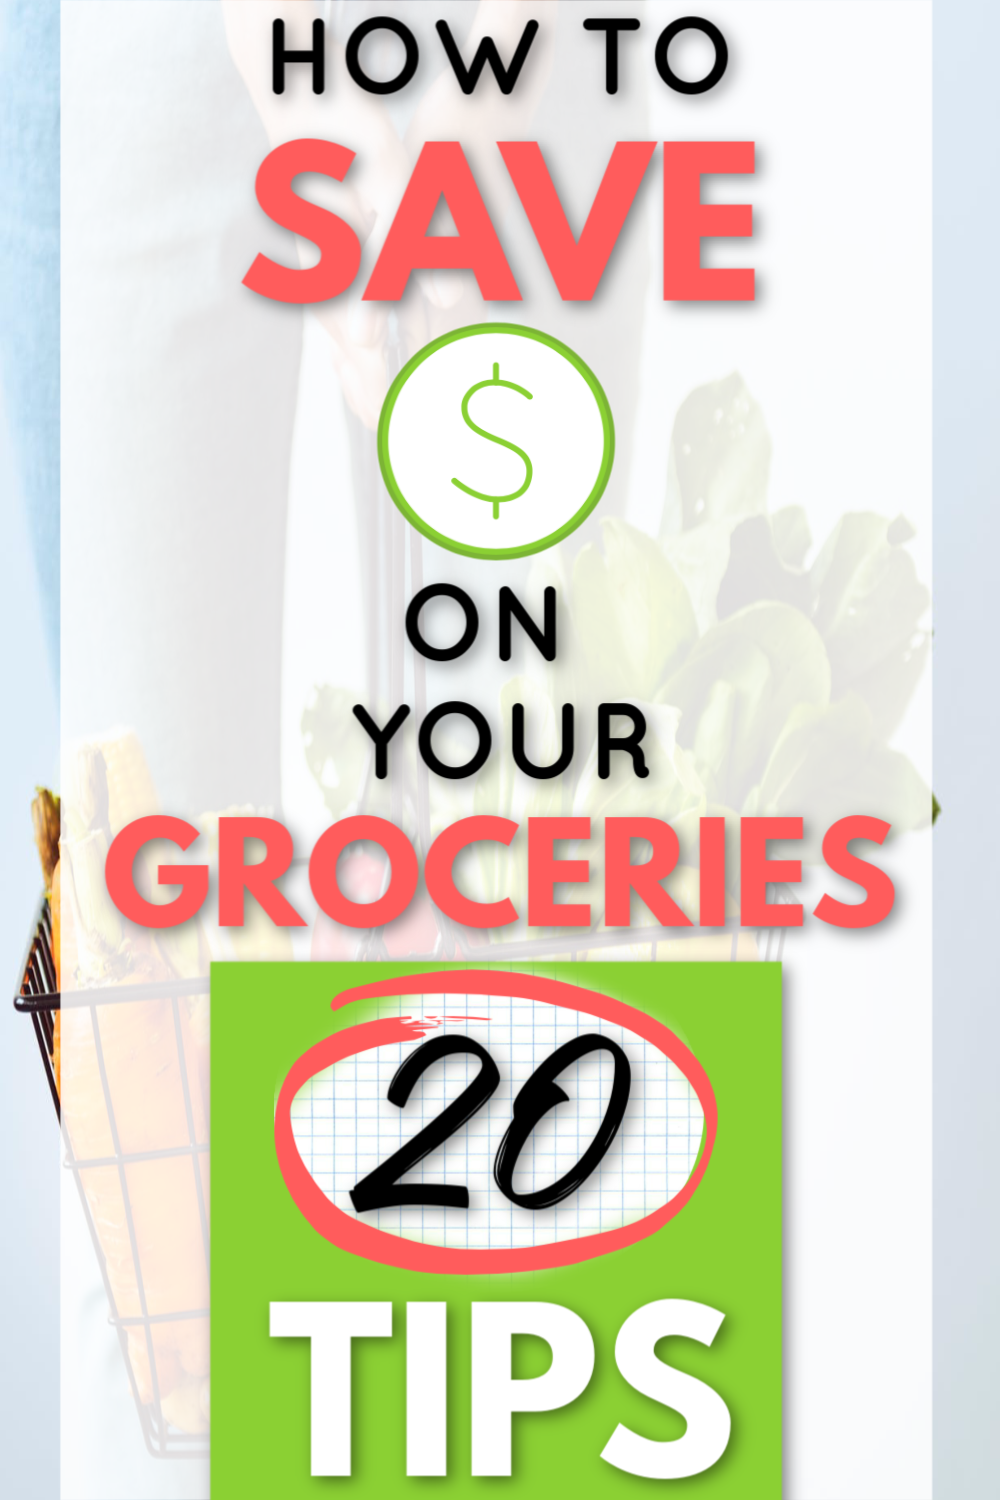 Save These Tips - ADD TO PINTEREST AND SPREAD THE MONEY SAVING GOODNESS!